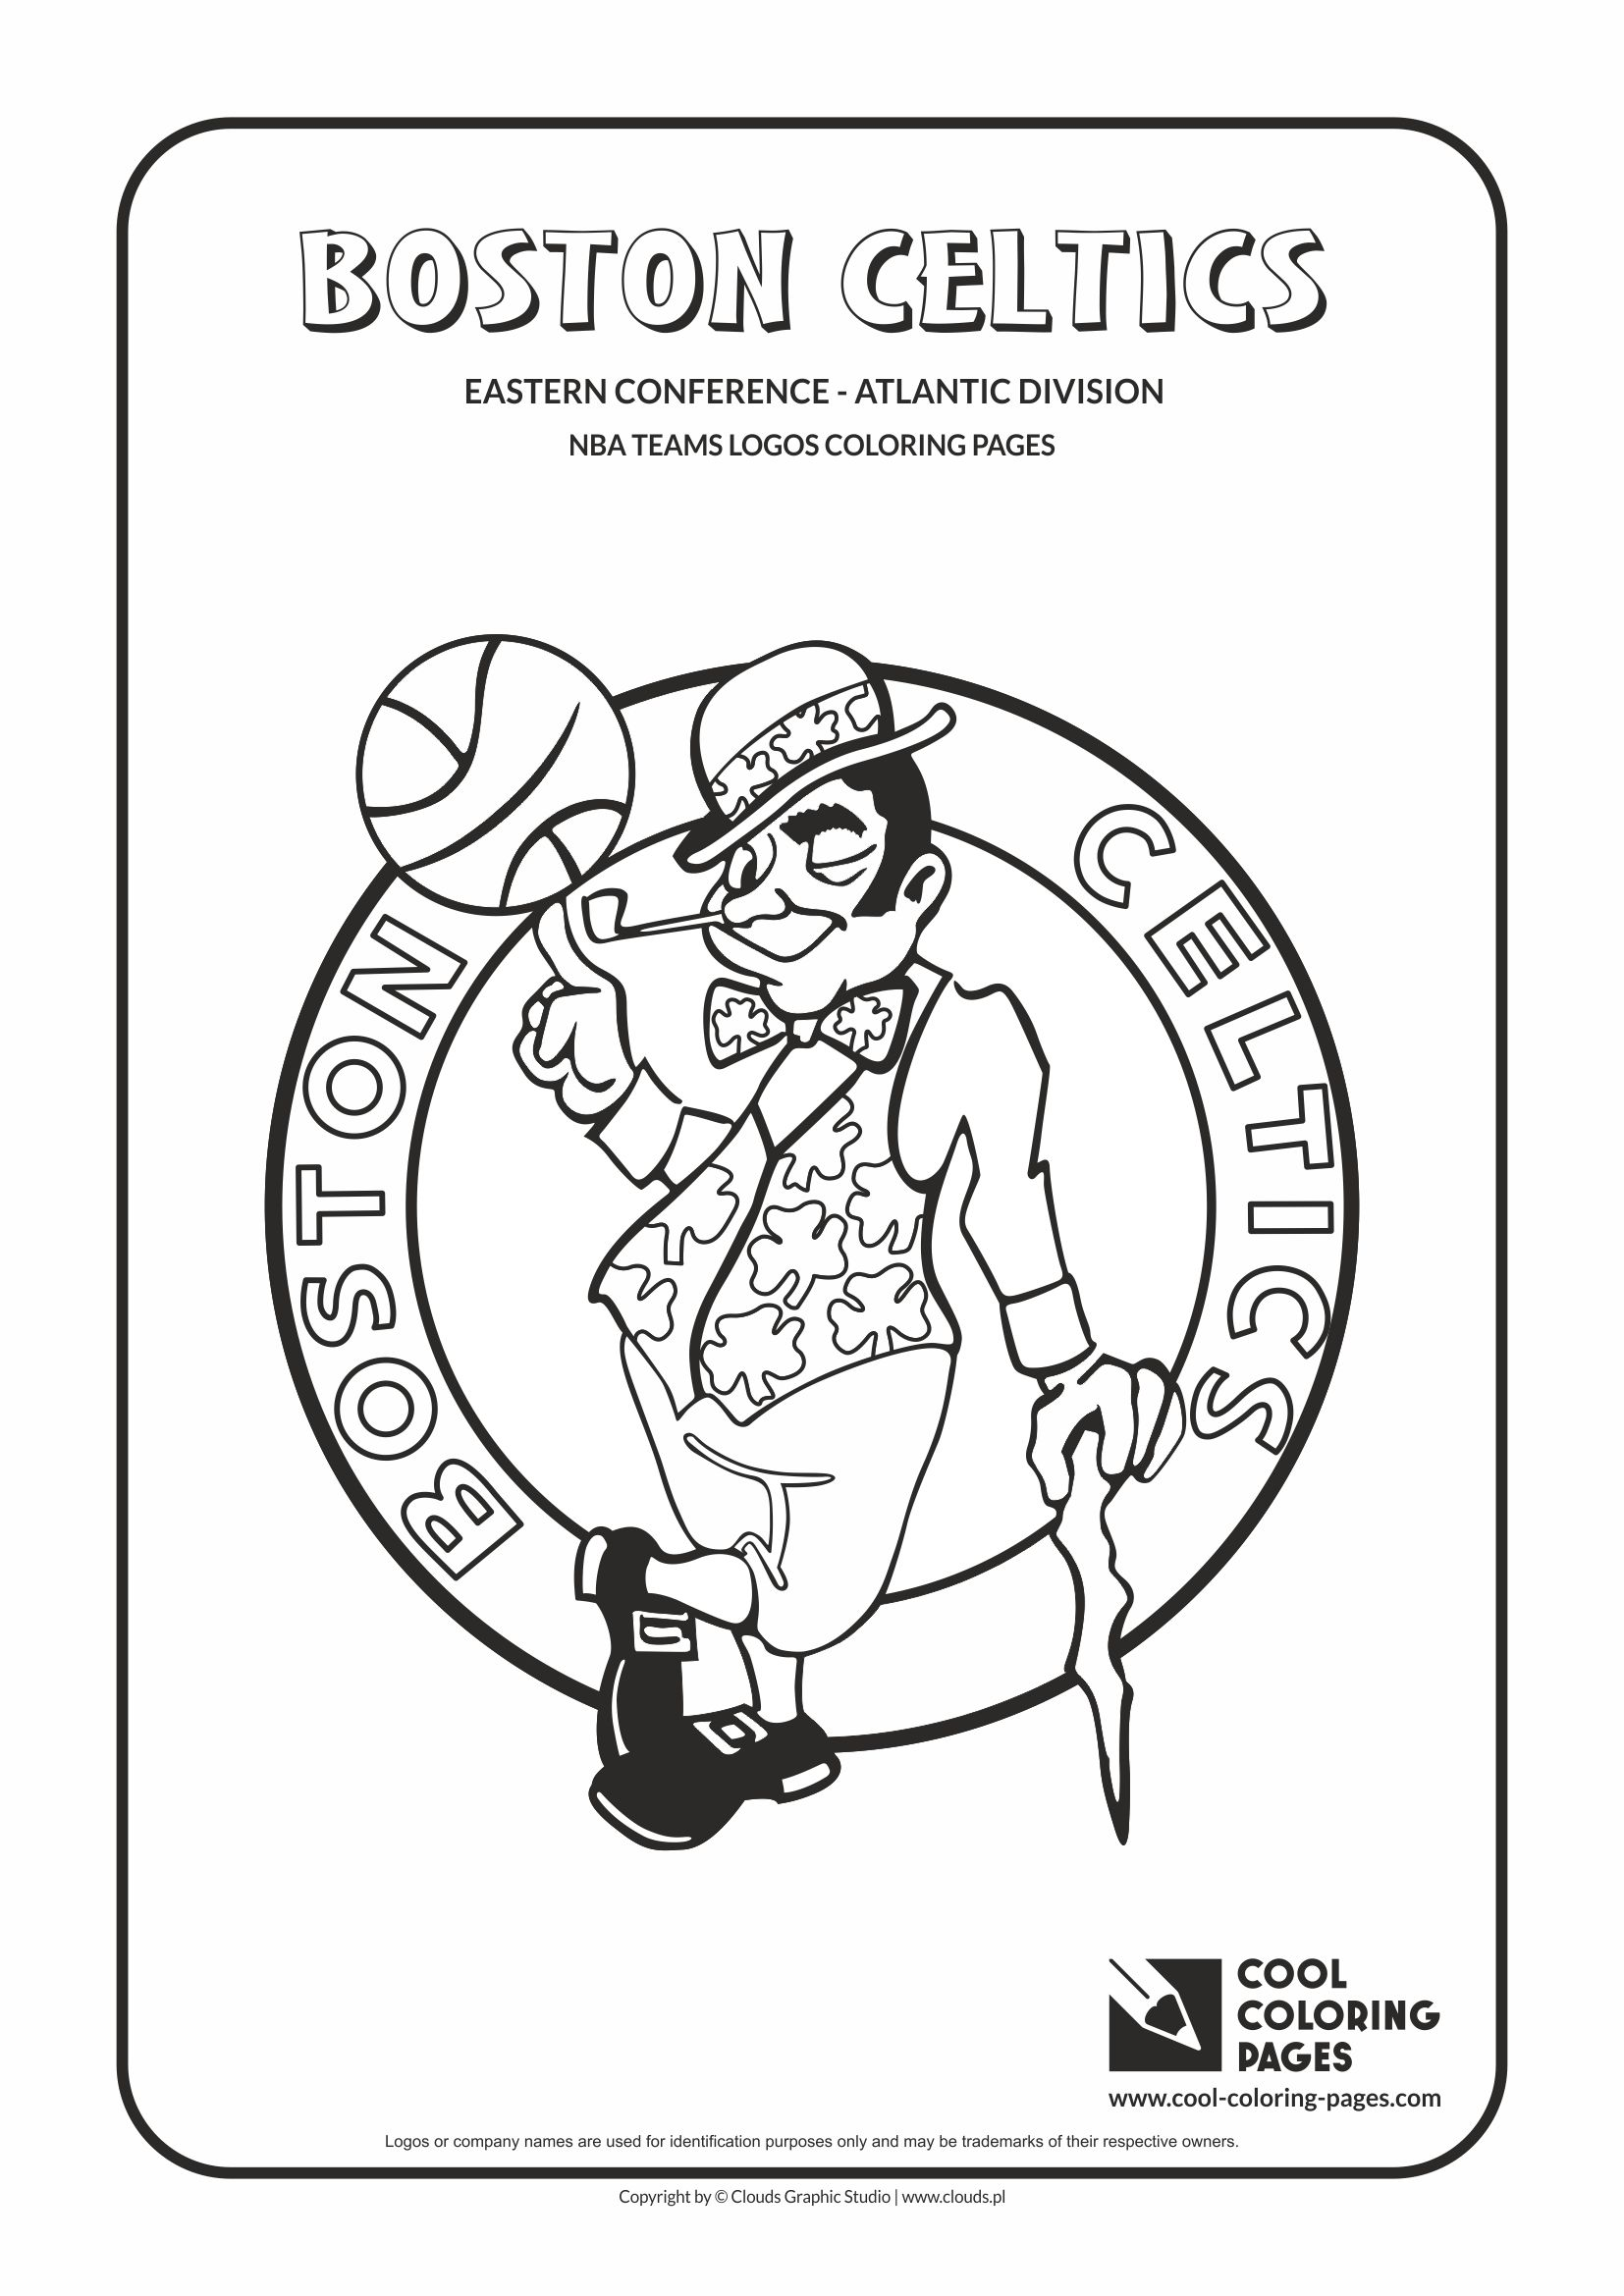 Cool Coloring Pages Boston Celtics Nba Basketball Teams